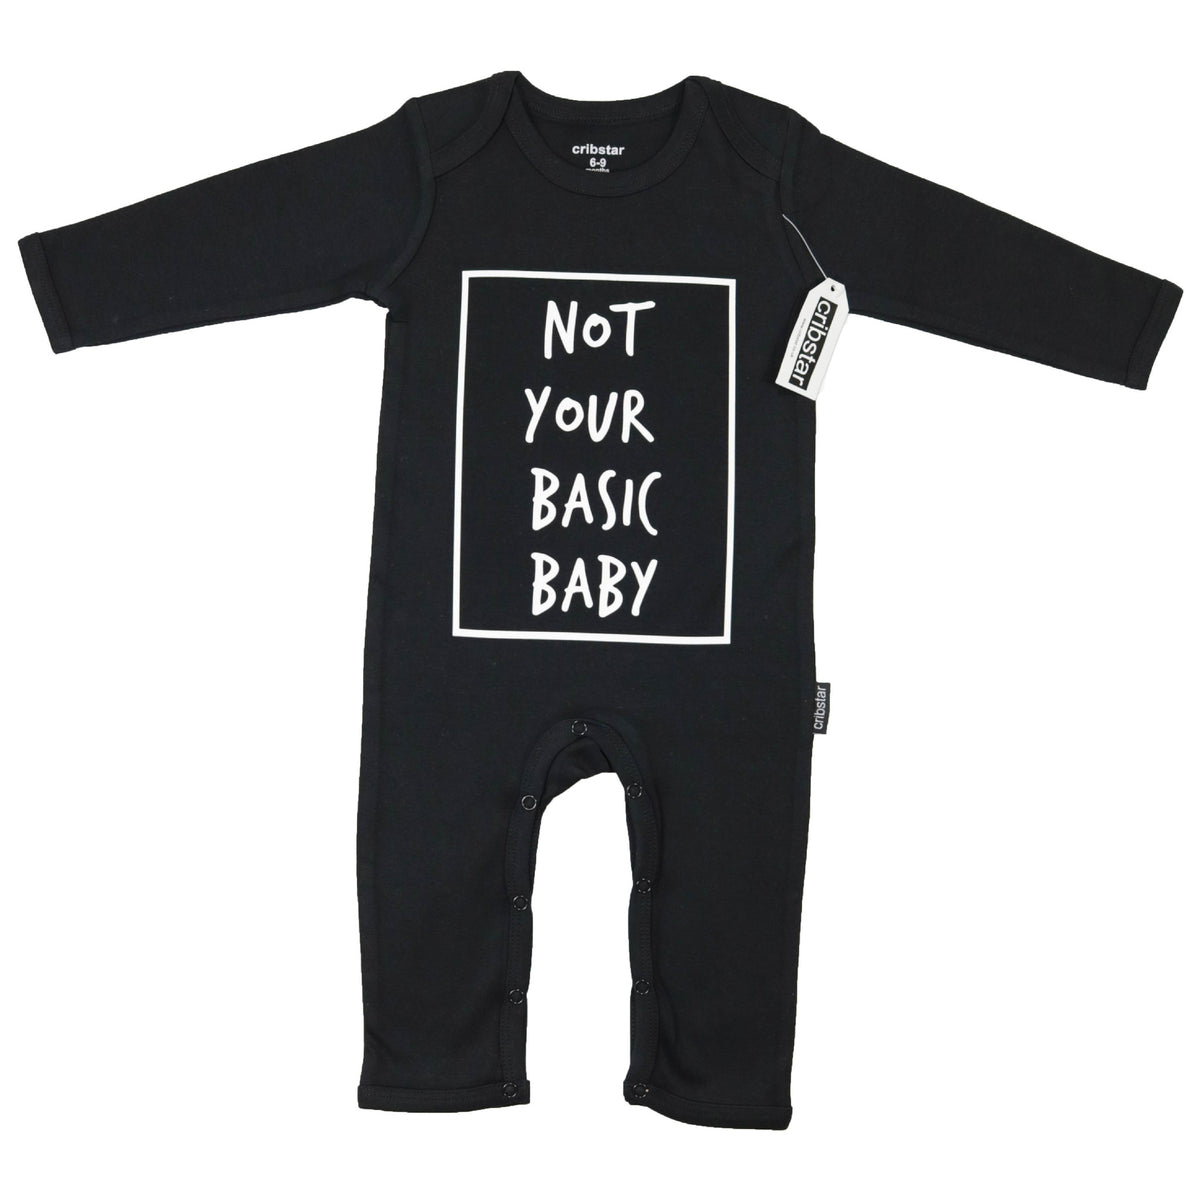 bec83cabf130 Not Your Basic Baby Romper – cribstar